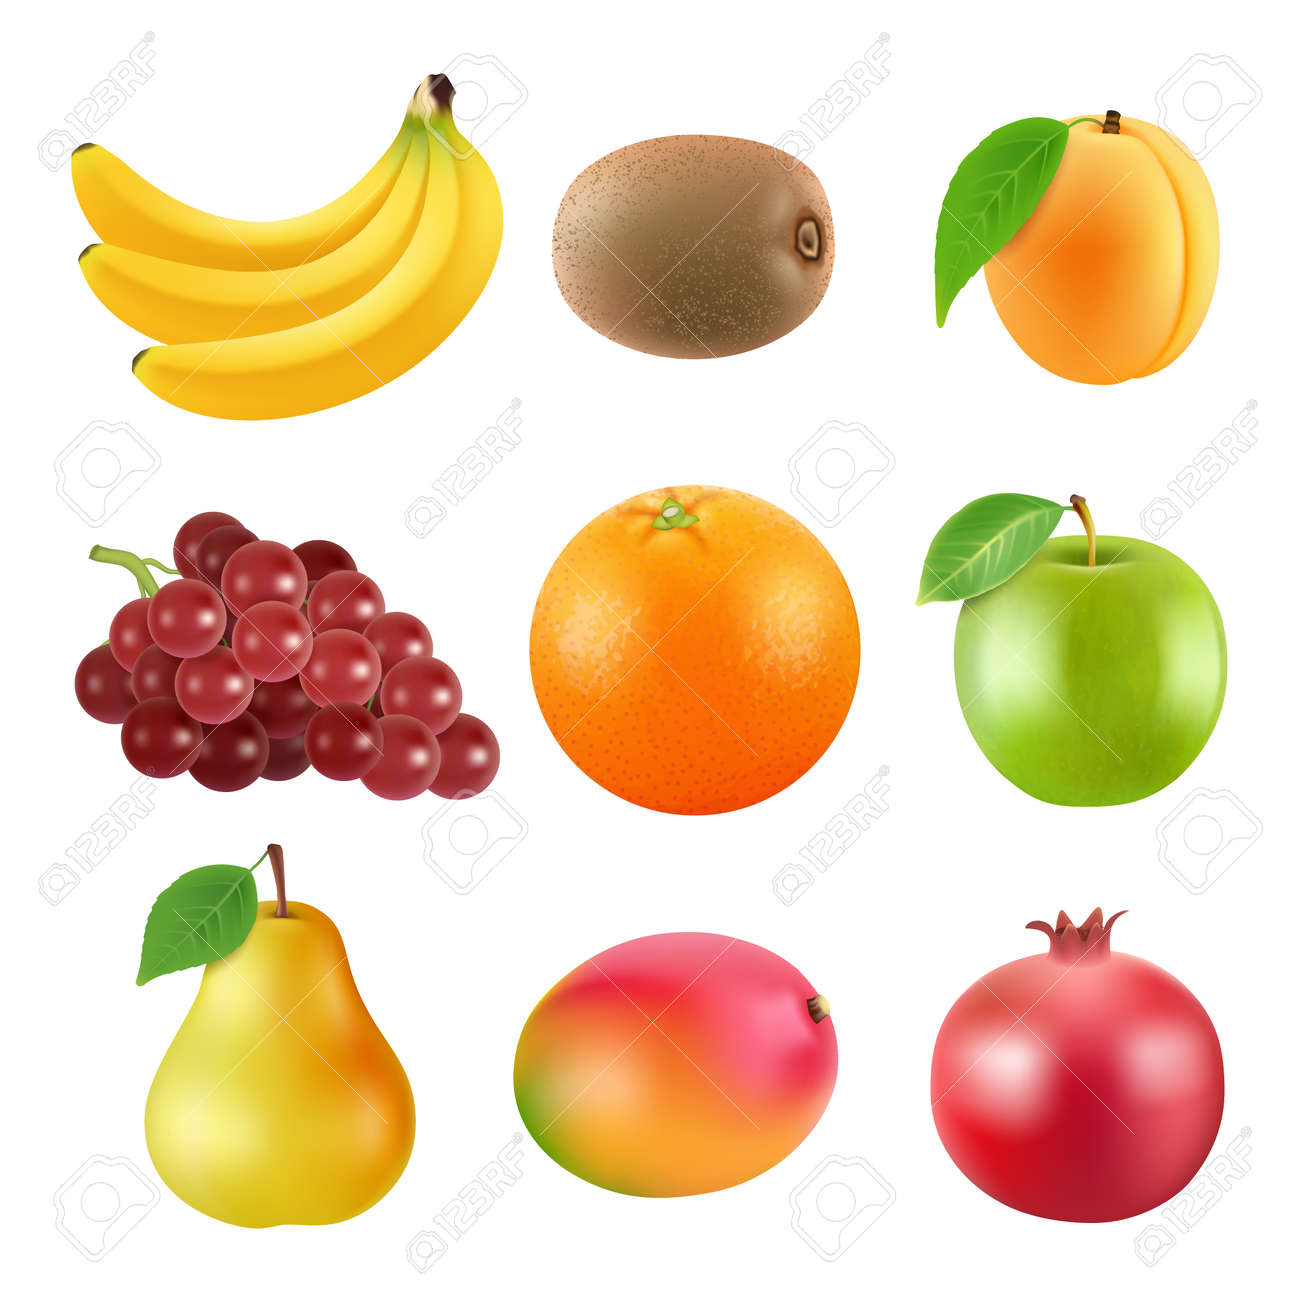 Different illustrations of fruits. Realistic vector pictures isolate on white - 167524080